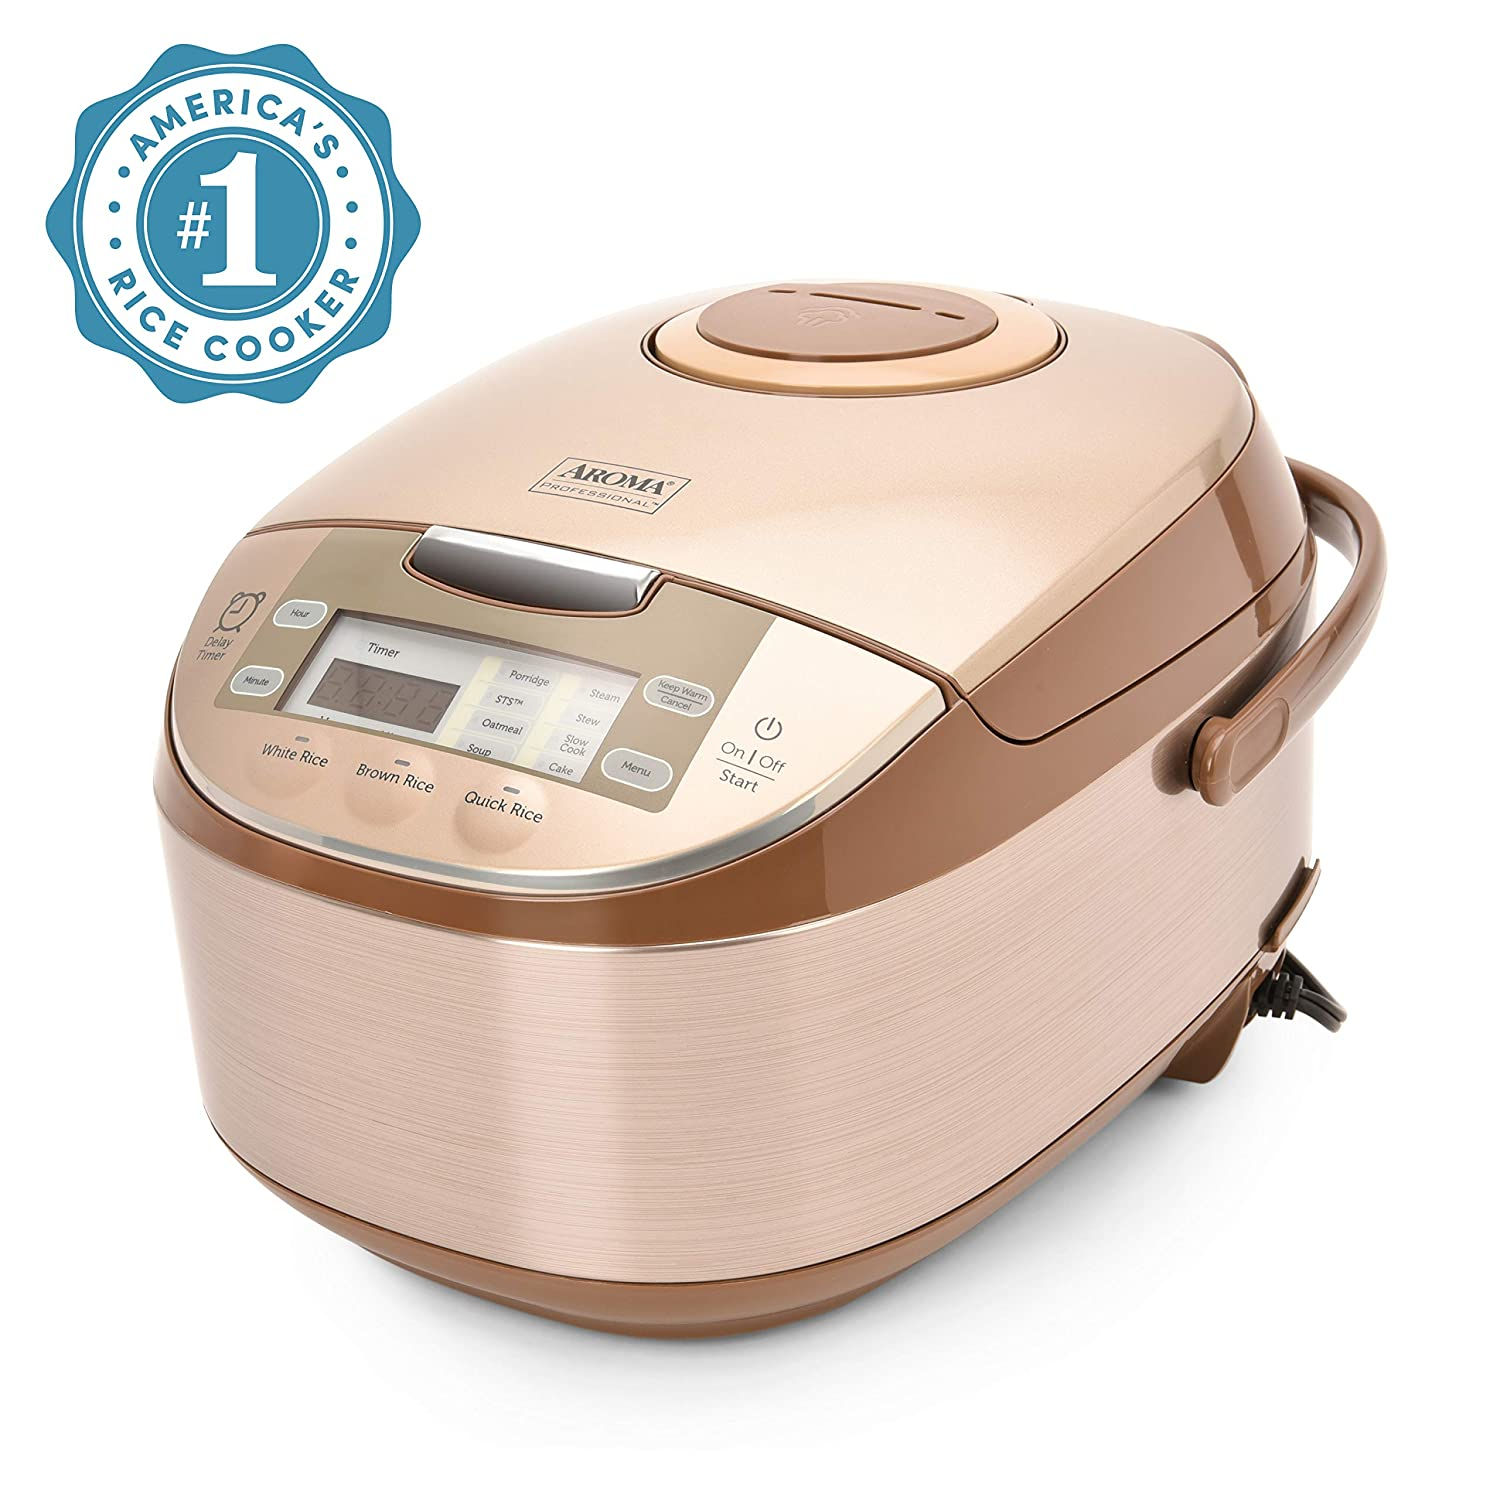 Aroma Housewares ARC-6106 Aroma Professional 6 Cups Uncooked Rice, Slow Cooker, Food Steamer, MultiCooker, Champagne